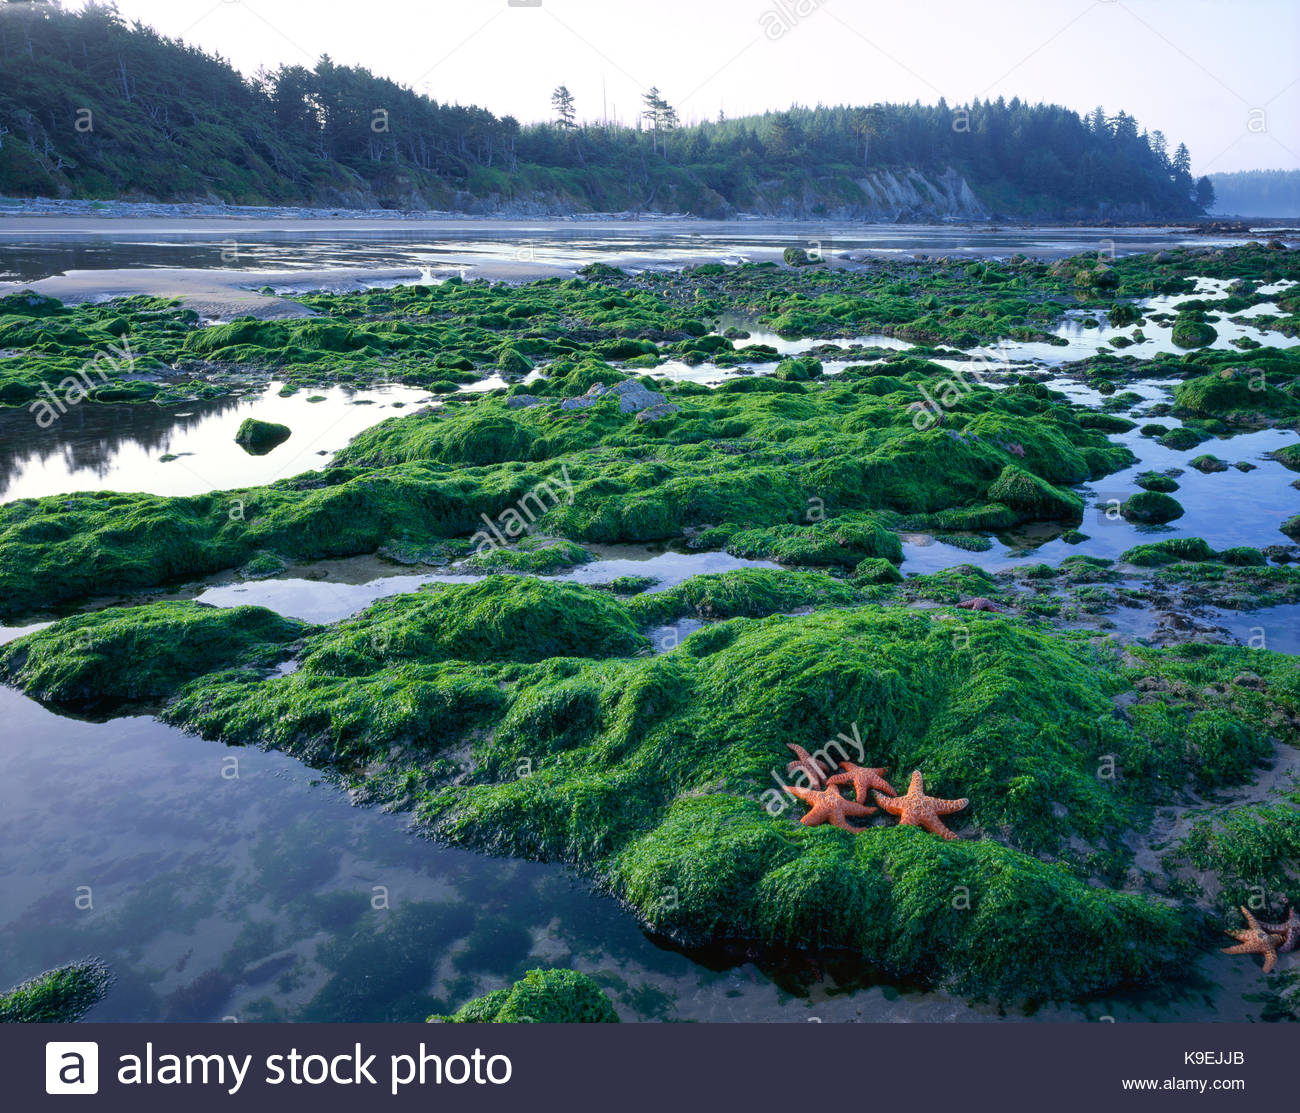 Meer Sterne und Tide Pools, Olympic National Park, Washington Stockbild